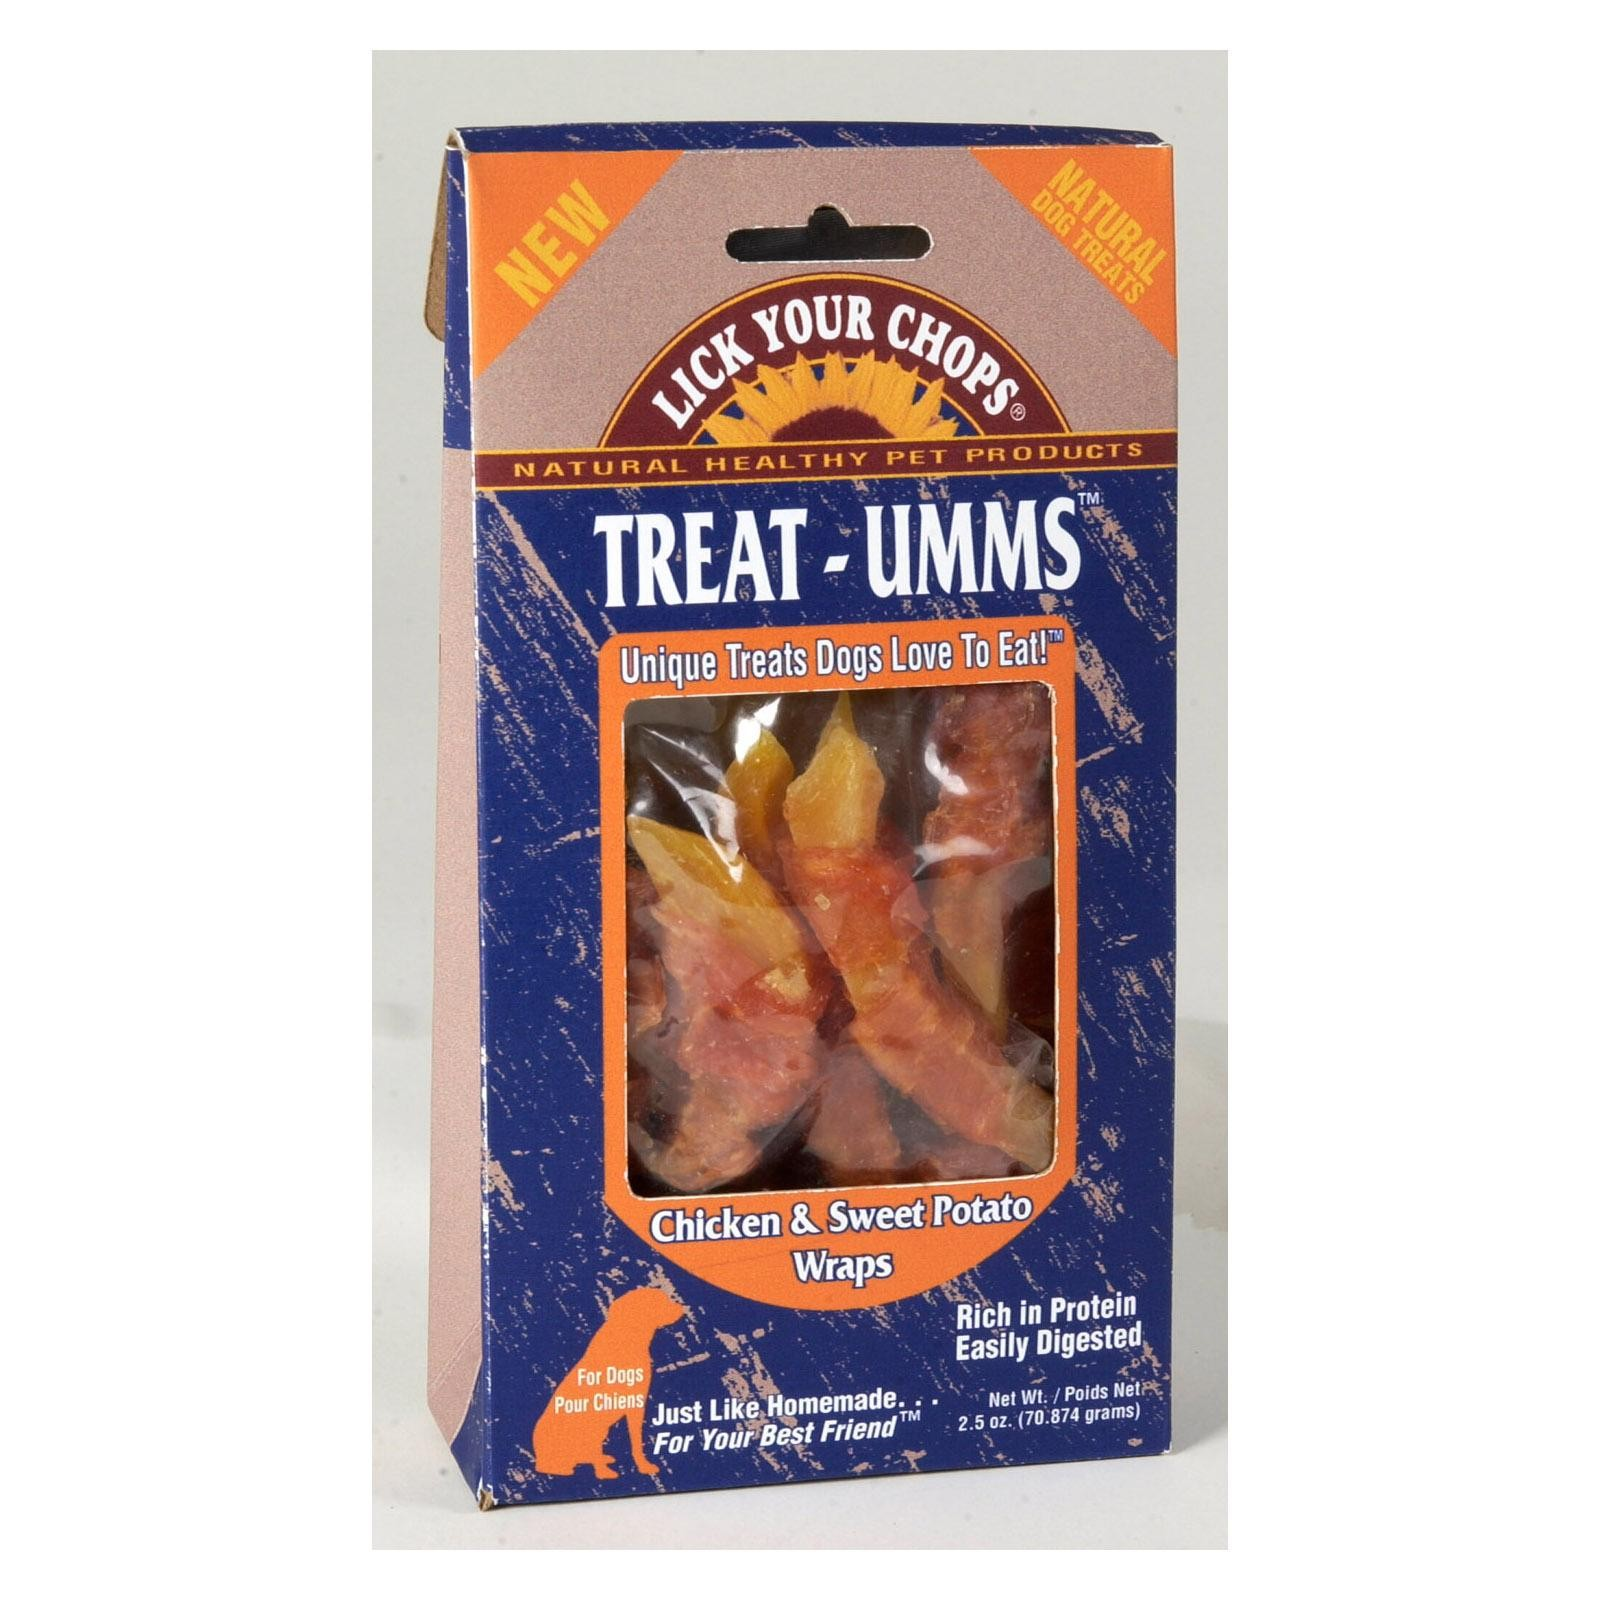 Lick Your Chops Treat - Umms Dog Treats - Chicken And Sweet Potato - Pack of 6 - 2.5 Oz.